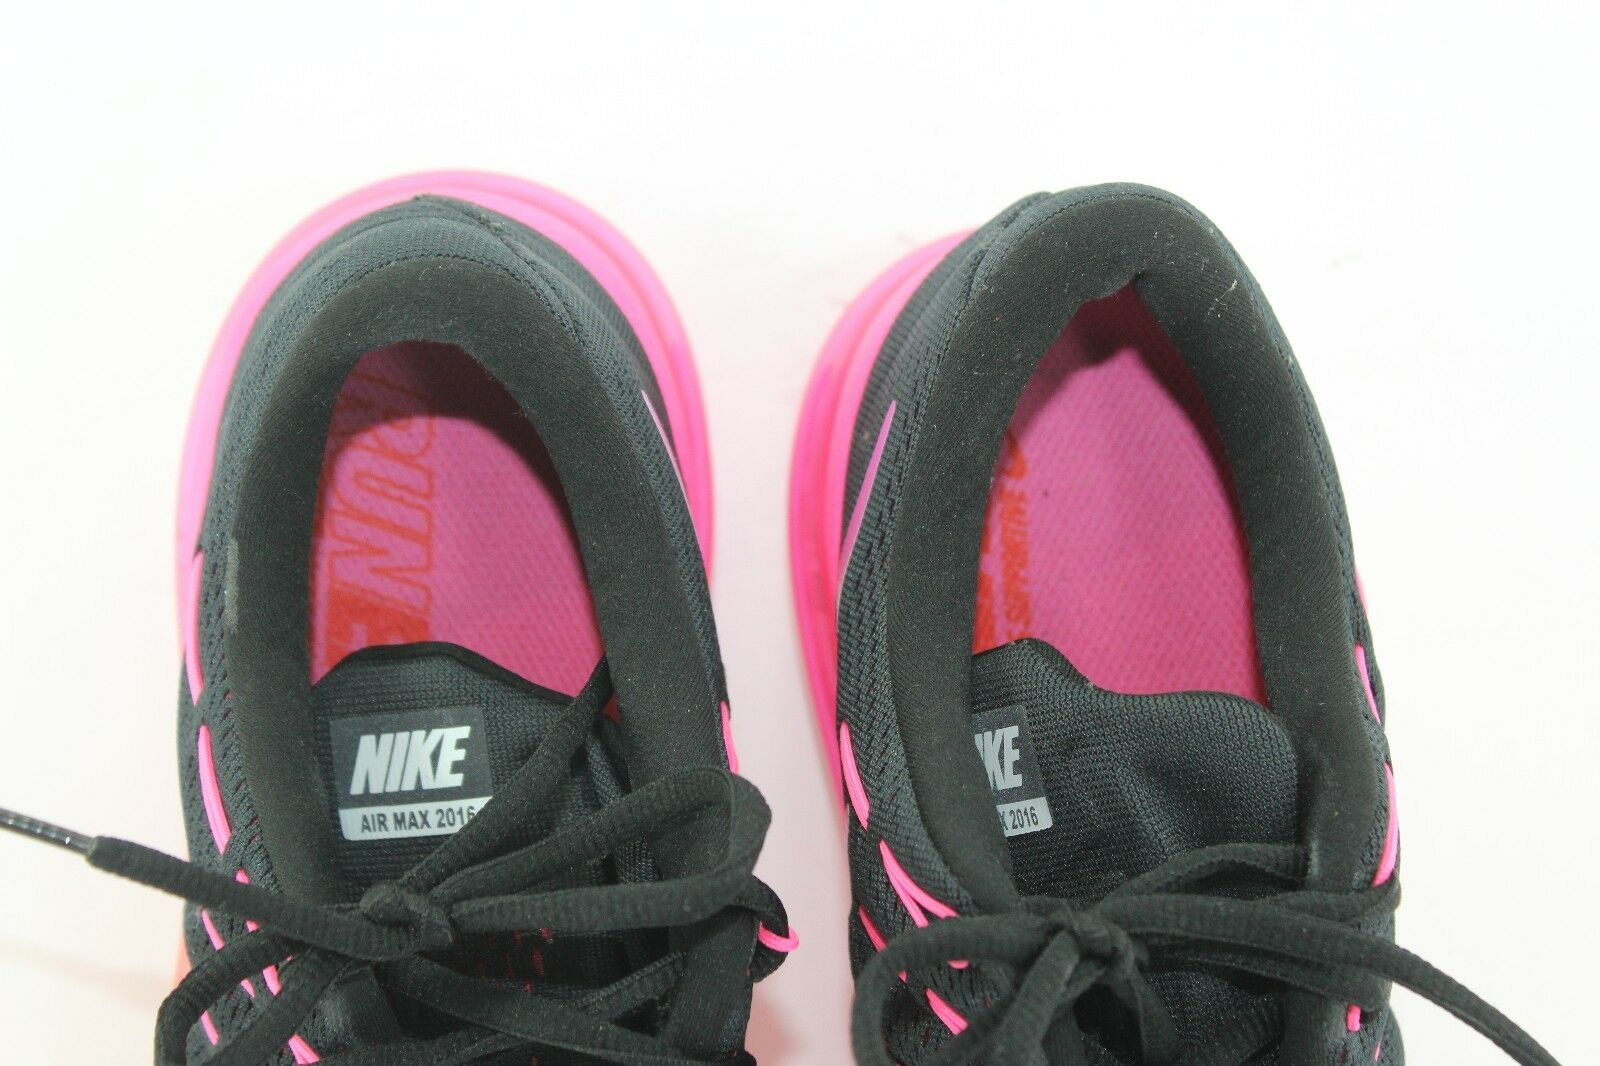 new arrivals 1a189 0b373 ... NIKE AIR 2016 BLACK PINK IN PRISTINE CONDITION SZ SZ SZ 12 WOMEN S  b48200 ...